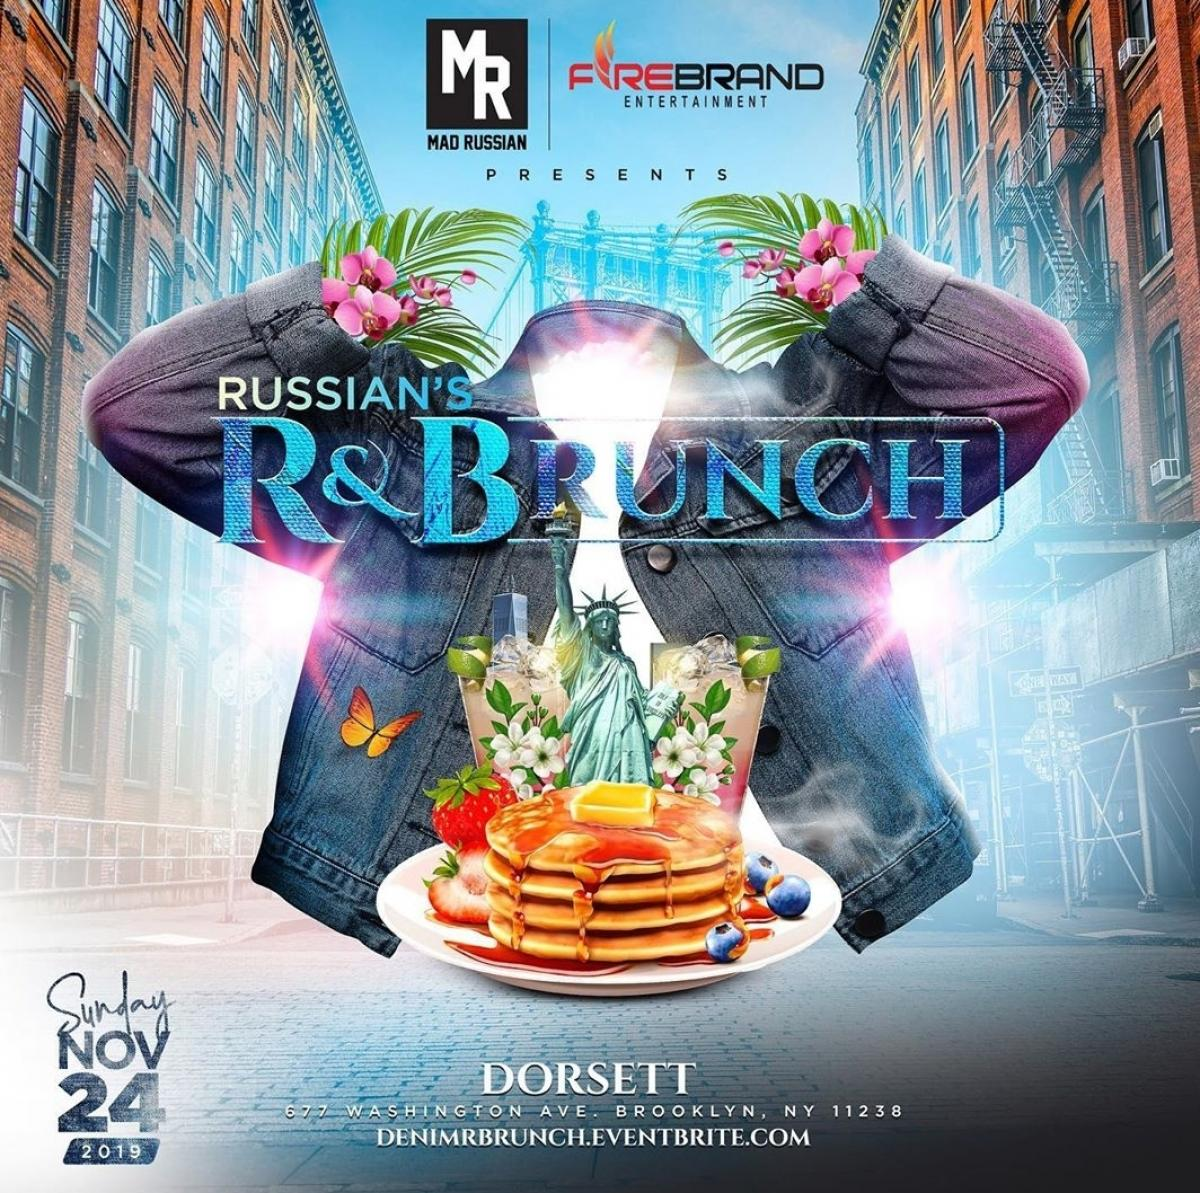 Russian's R & Brunch flyer or graphic.